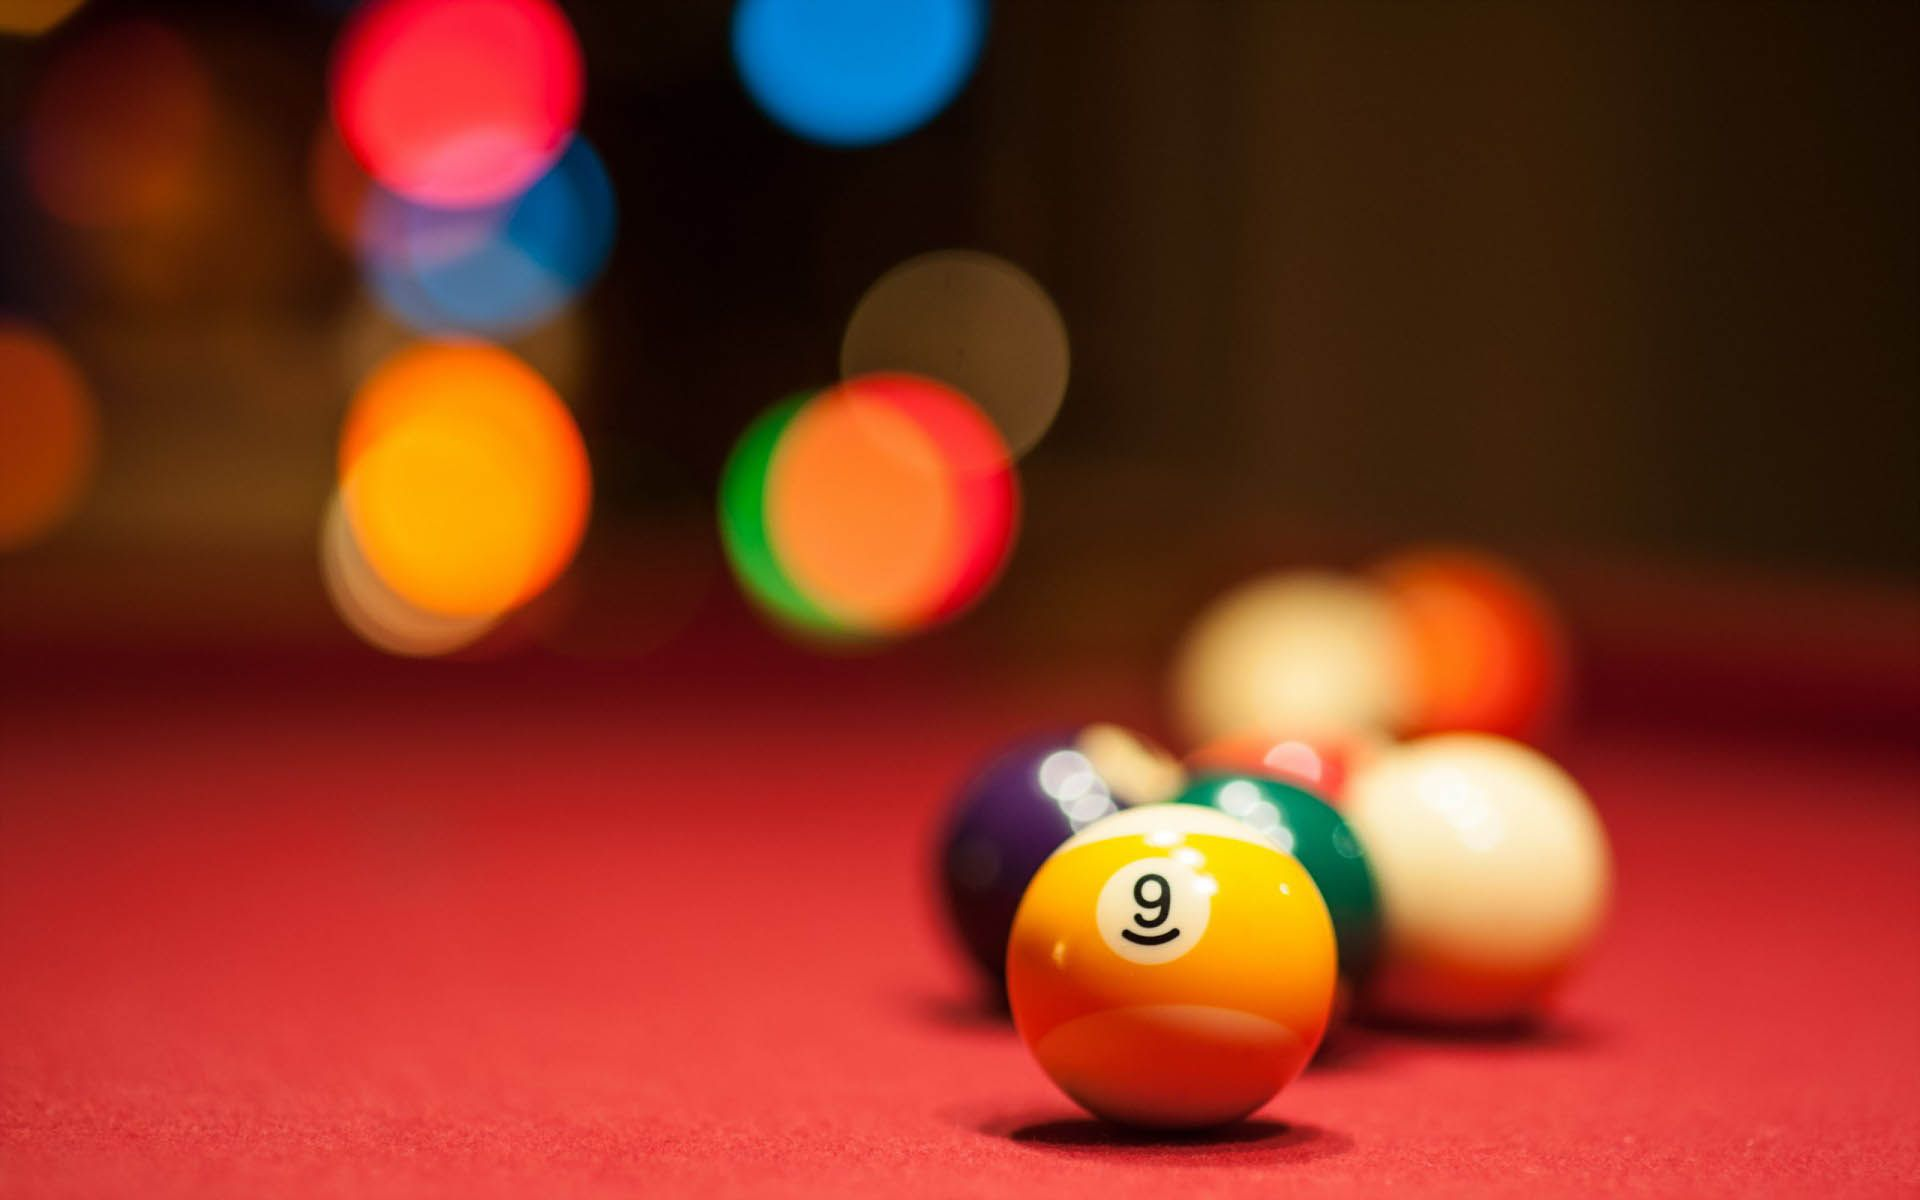 Awesome Billiards Wallpaper 798 Duwanes MAN CAVE ITEMS Pool 1920x1200